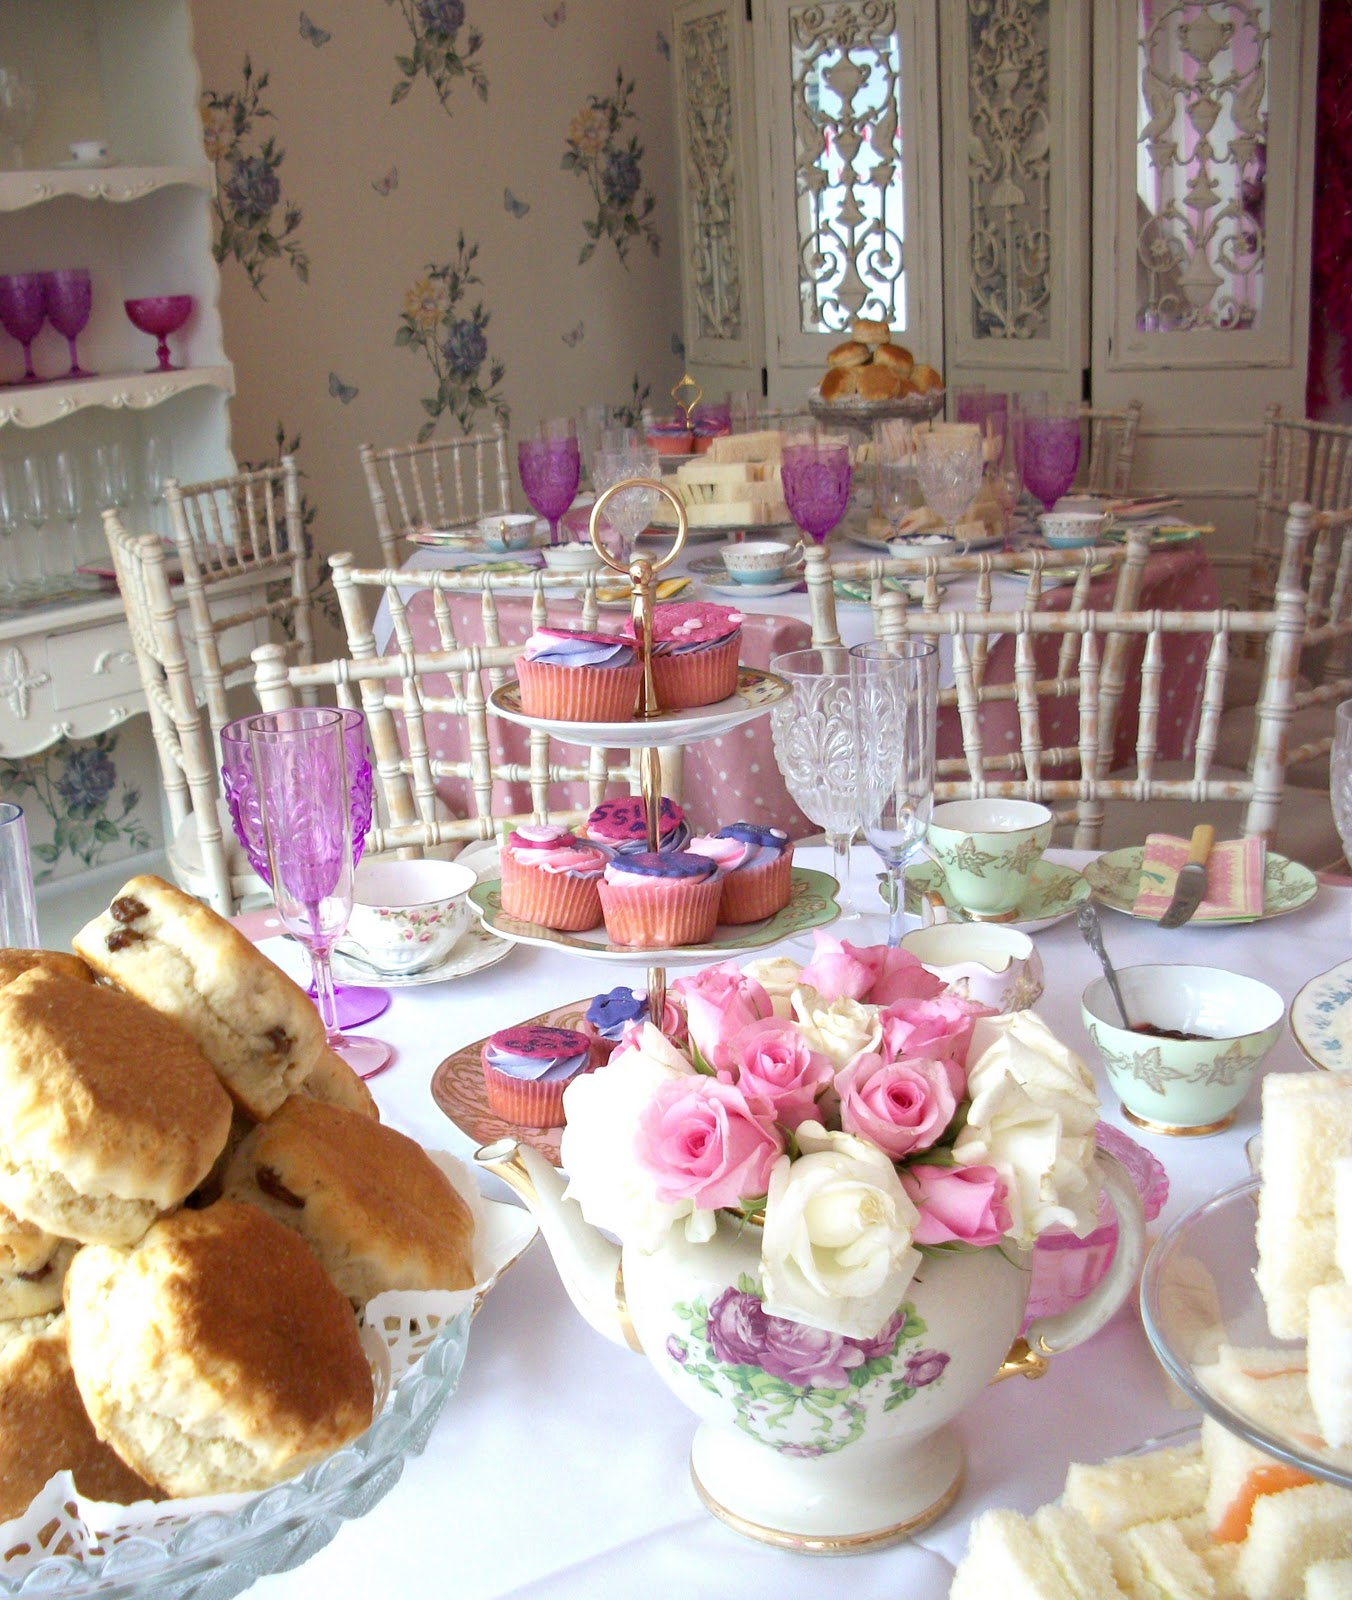 English Tea Party Decorations: Les Enfants, Stylish Children's Parties Blog: November 2011